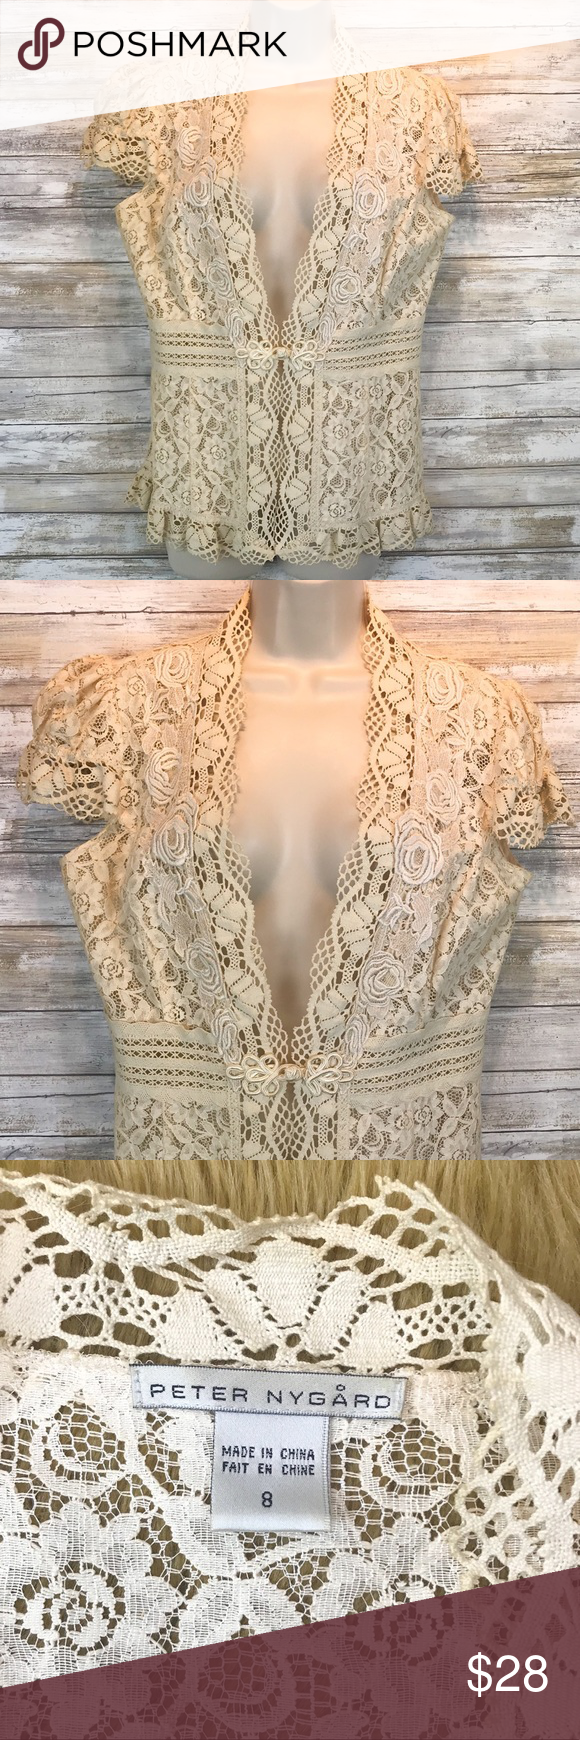 a997ce56324 Peter Nygard cream lace vest sz 8 Peter Nygard cream lace vest sz 8  Excellent Condition Peter Nygard Tops